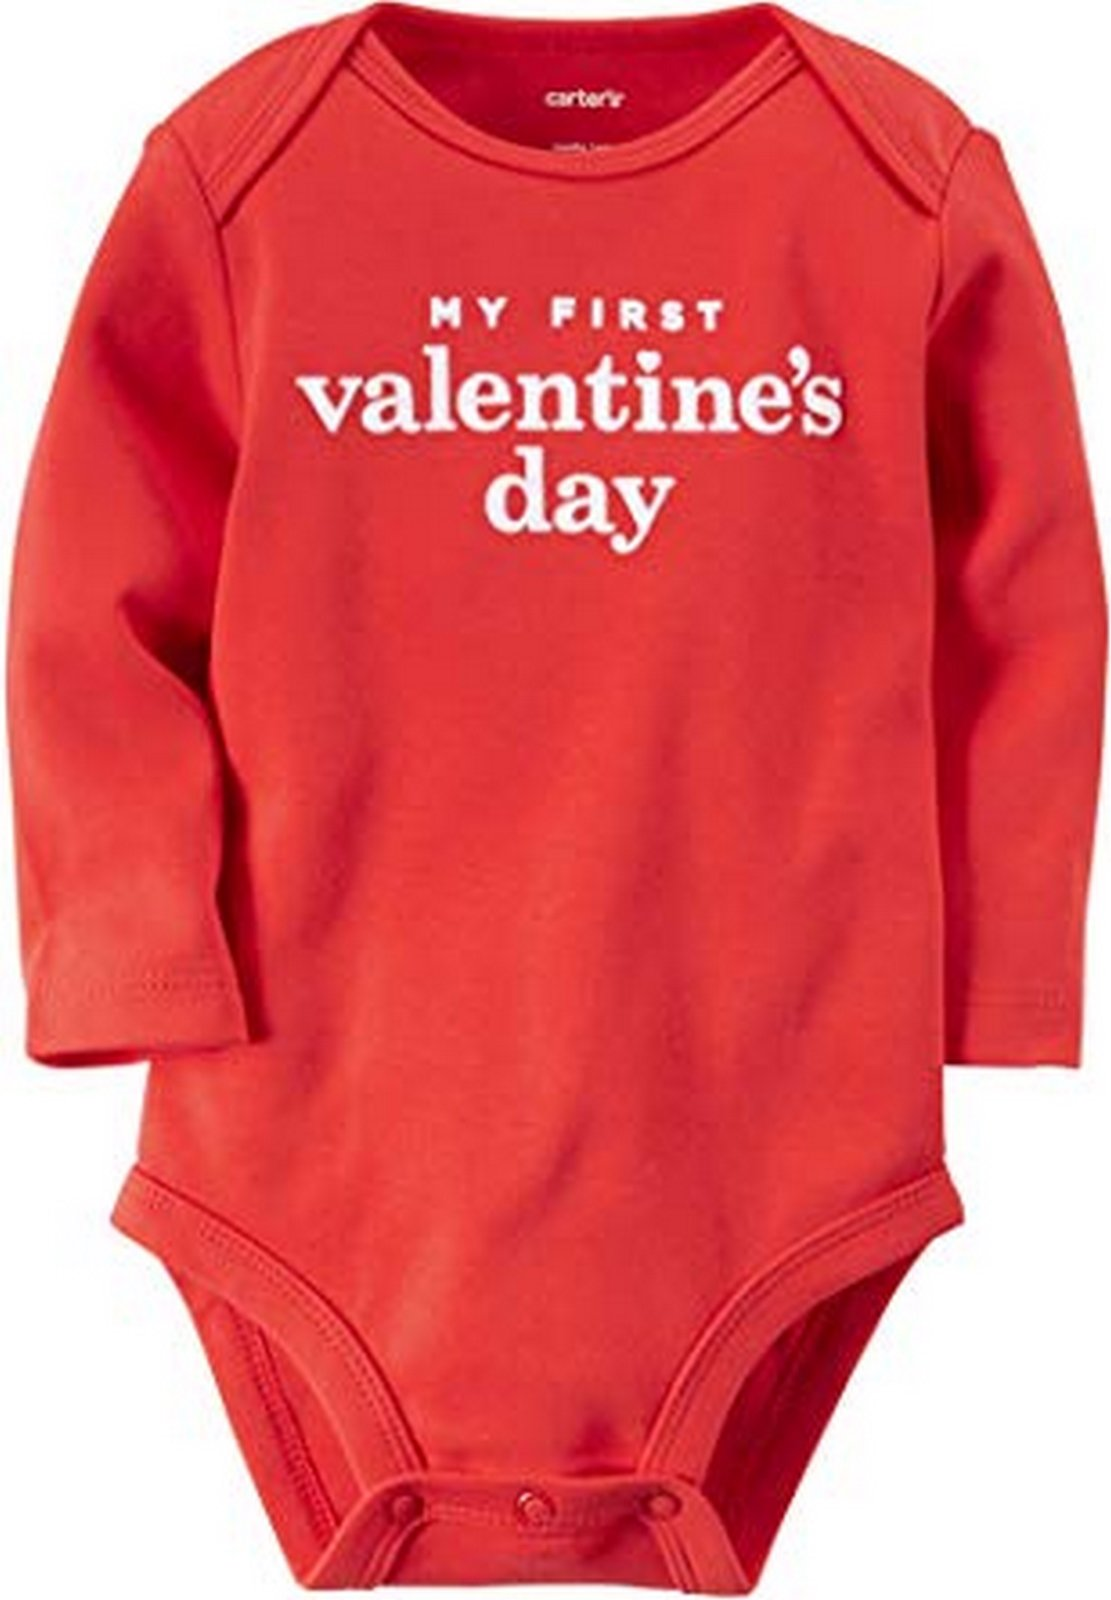 Carter's My First Valentine's Day Bodysuit  Modelo 119G054